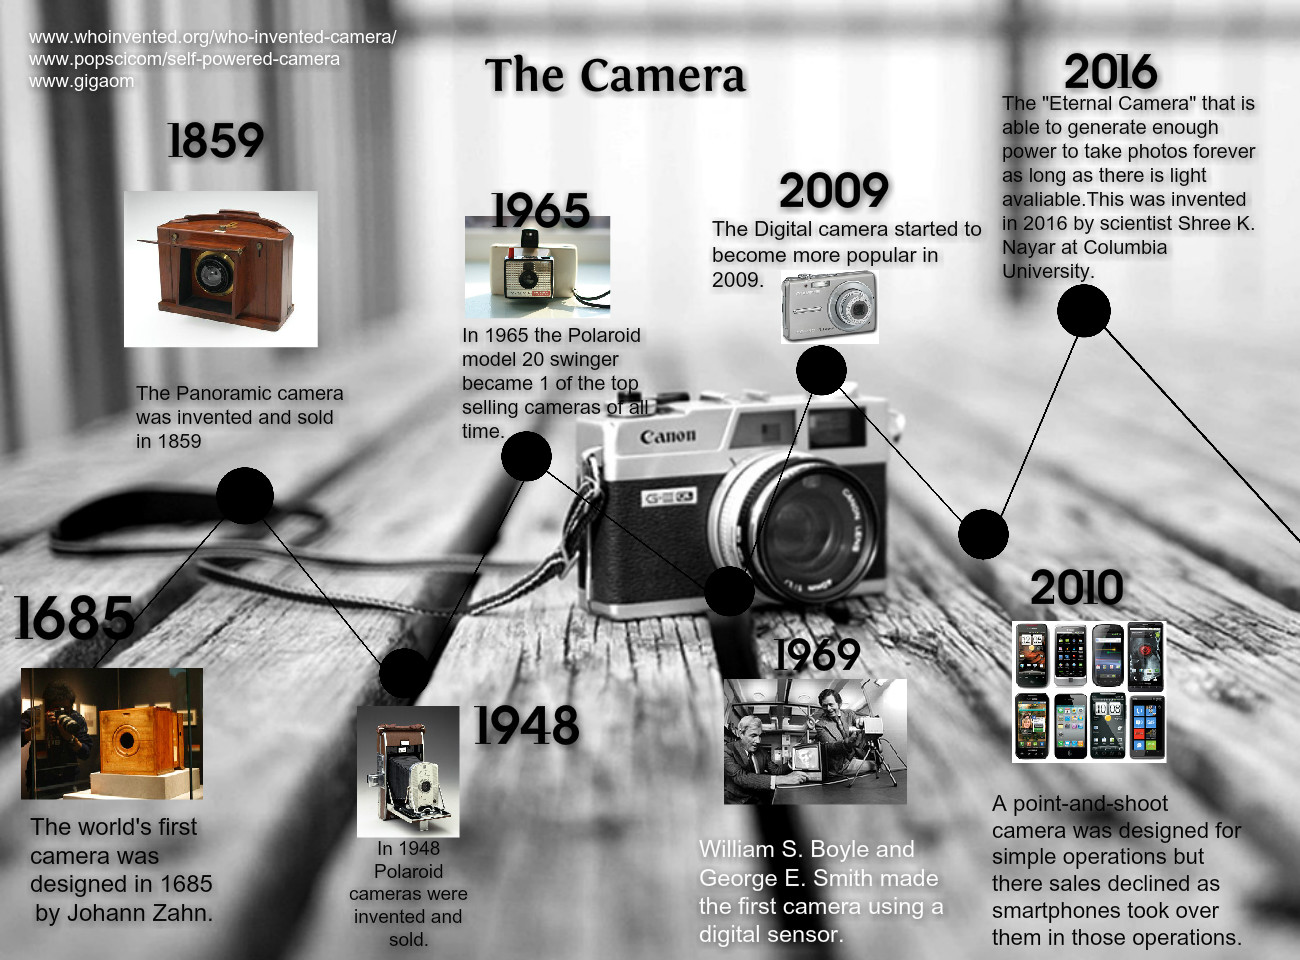 [2016] Samantha Garcia: Timeline of The Camera